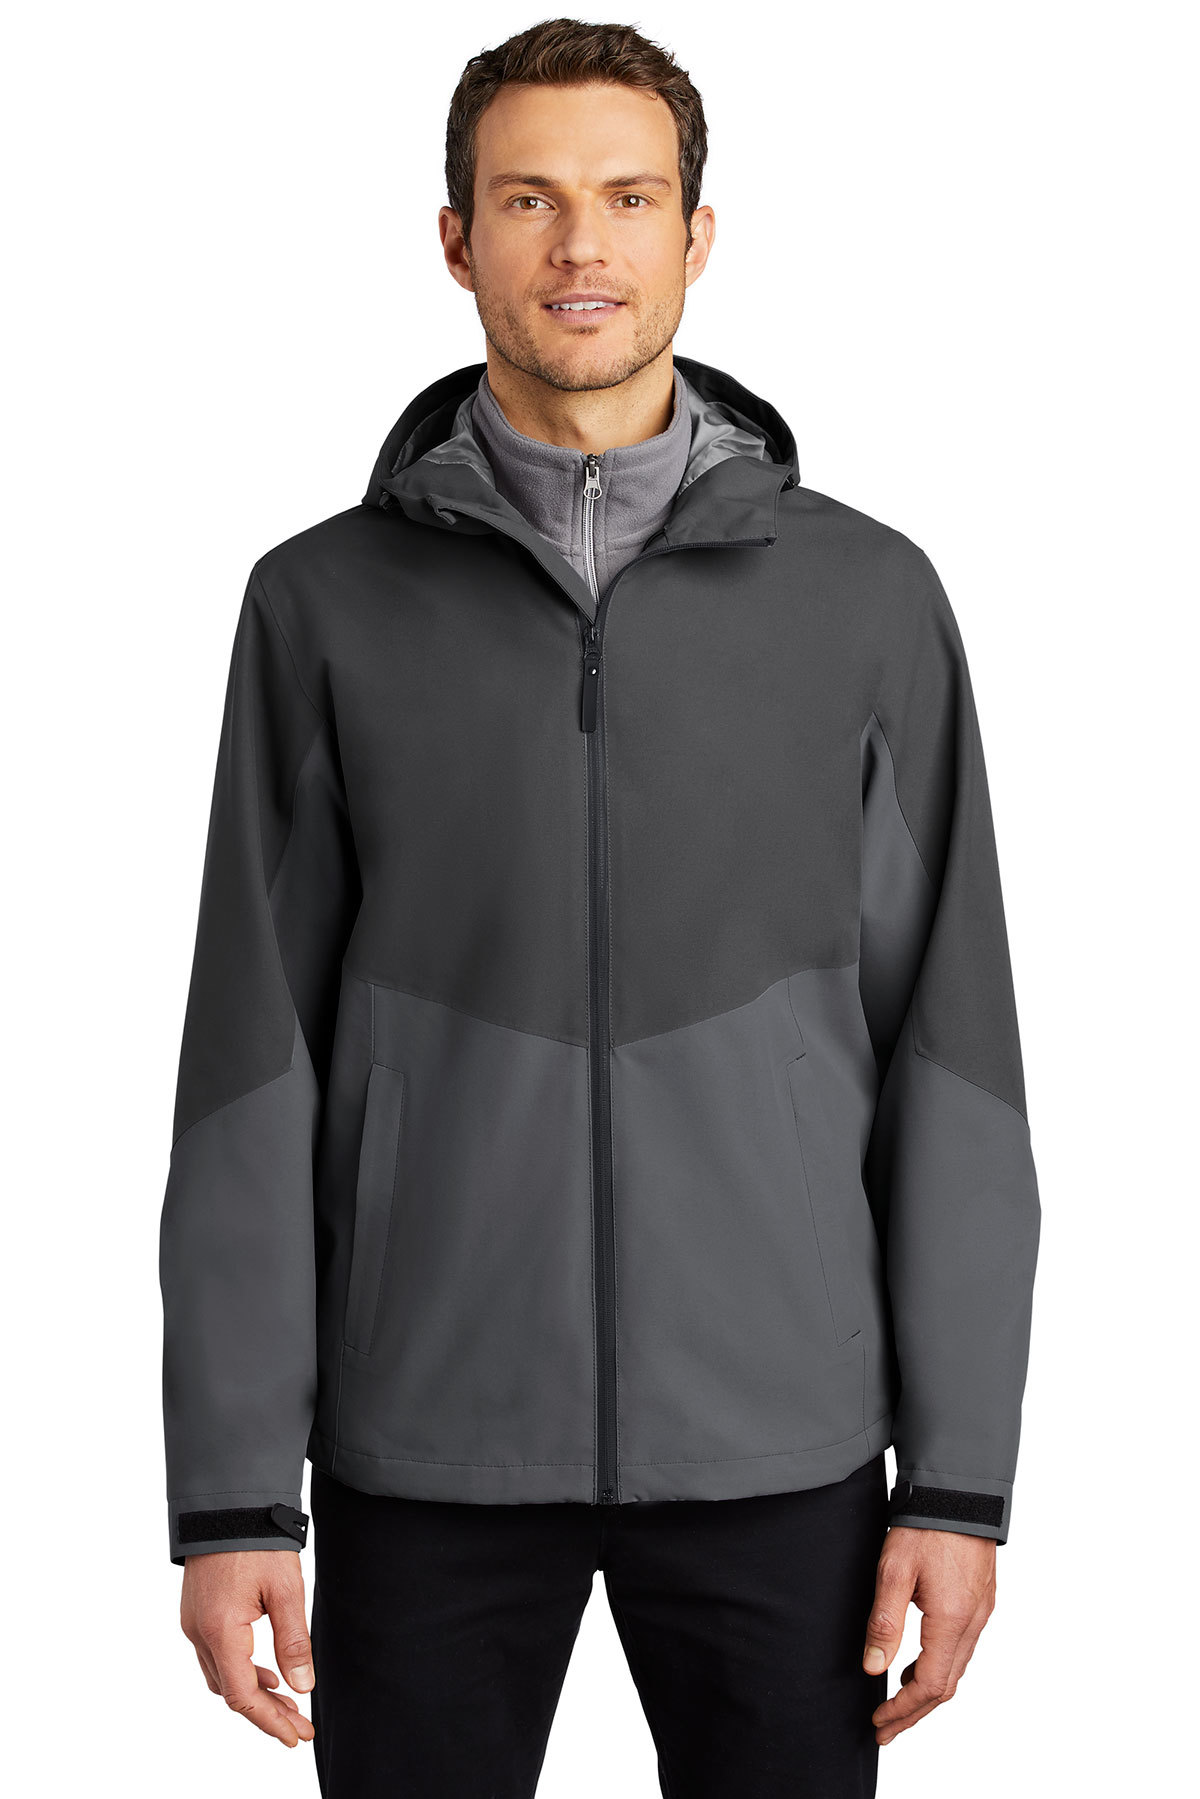 Port Authority J406 - Tech Rain Jacket